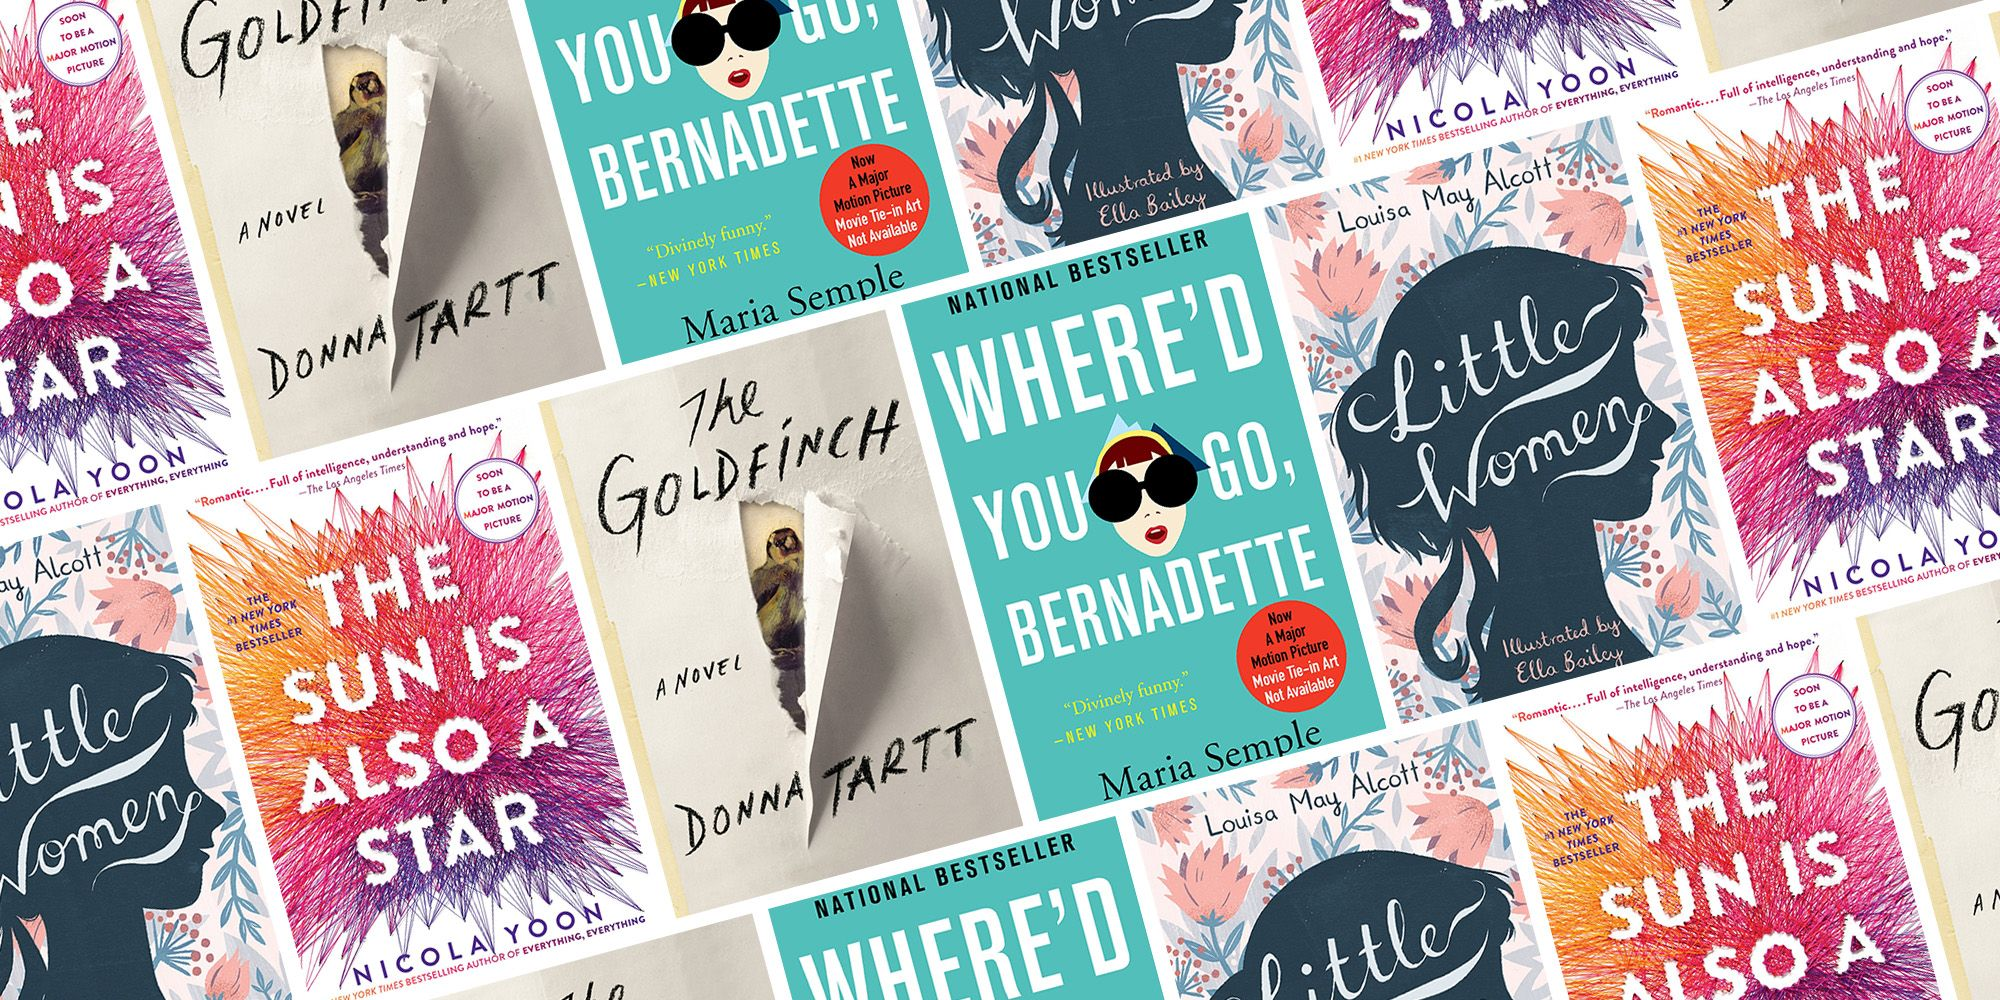 32 Books to Read Before They Become Movies in 2019